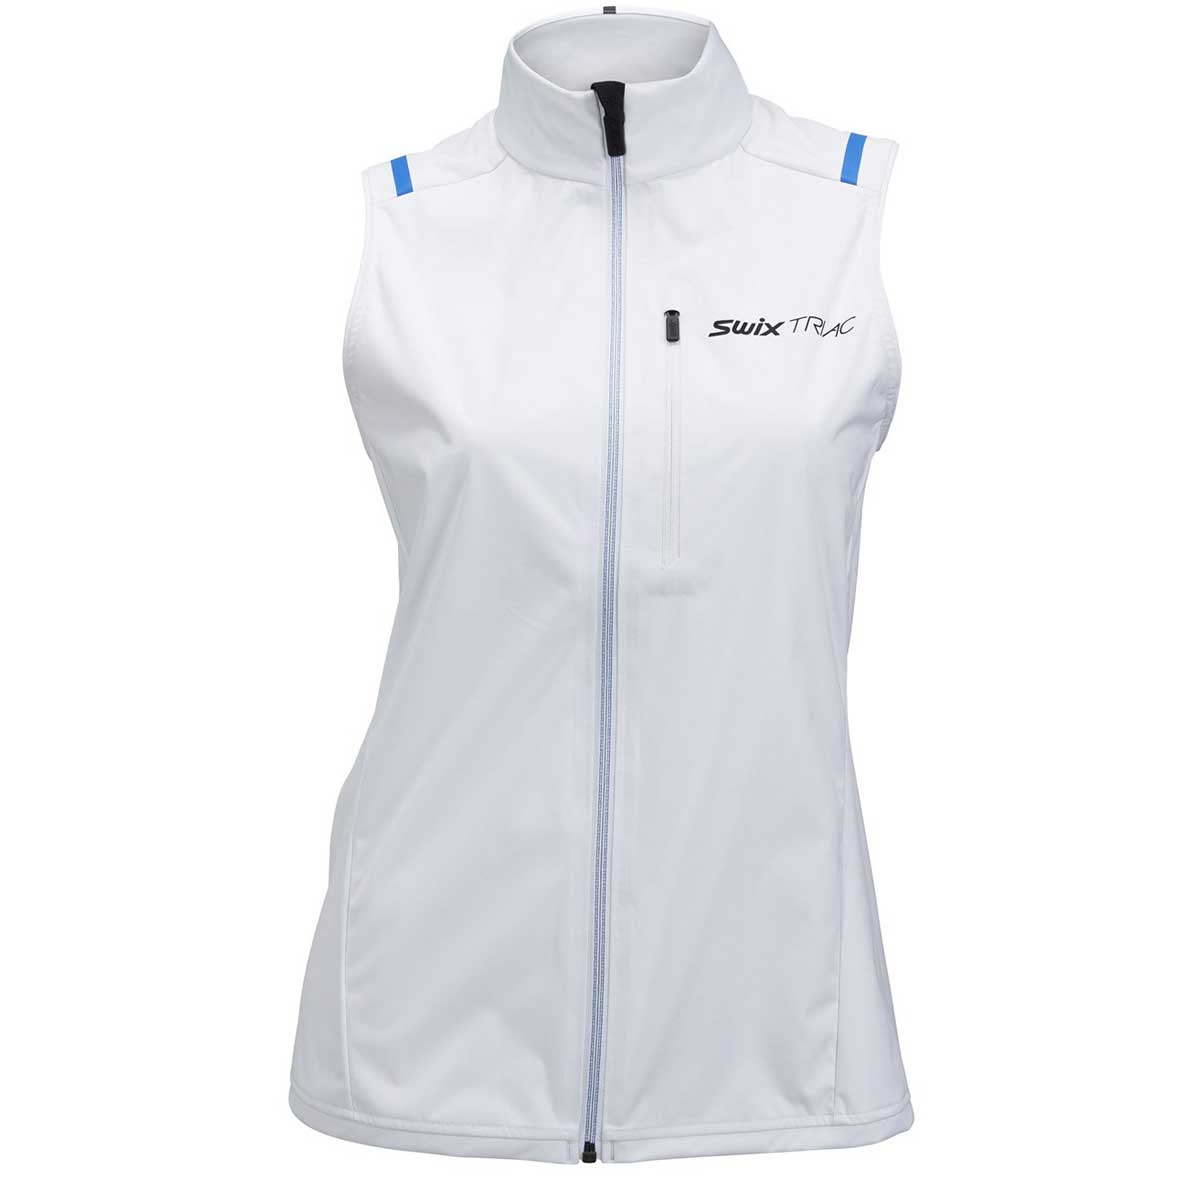 Swix Women's Triac 3.0 Vest in Bright White